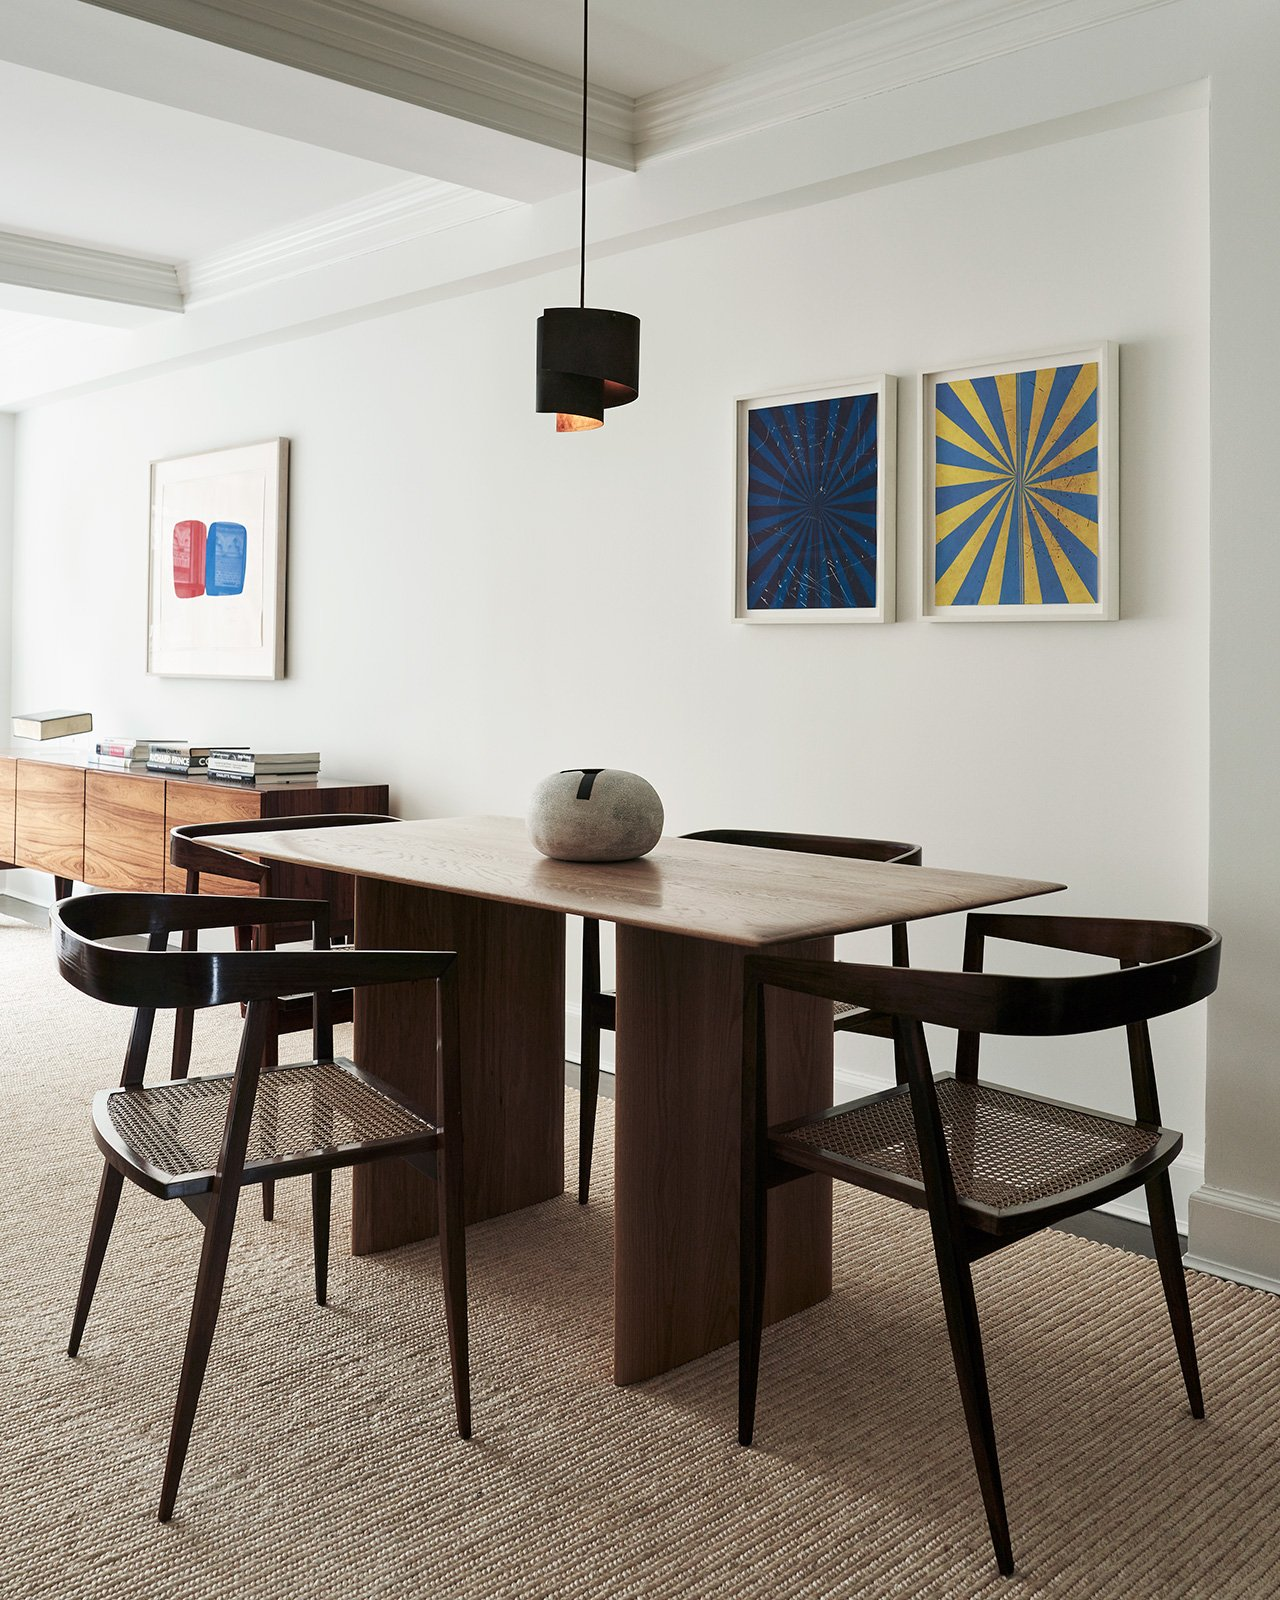 Photography by Adrian Gaut. Styling by Colin King. Featured: Bespoke dining table bySandra Weingort fabricated by Casey Johnson Studio; Dining chairs byJoaquim Tenreiro circa 1960 from Bossa Furniture; Pendant lamp byJørn Utzon circa 1960 from Galerie Half; Artwork (Diptych) byMark Grotjahn from Anton Kern Gallery.